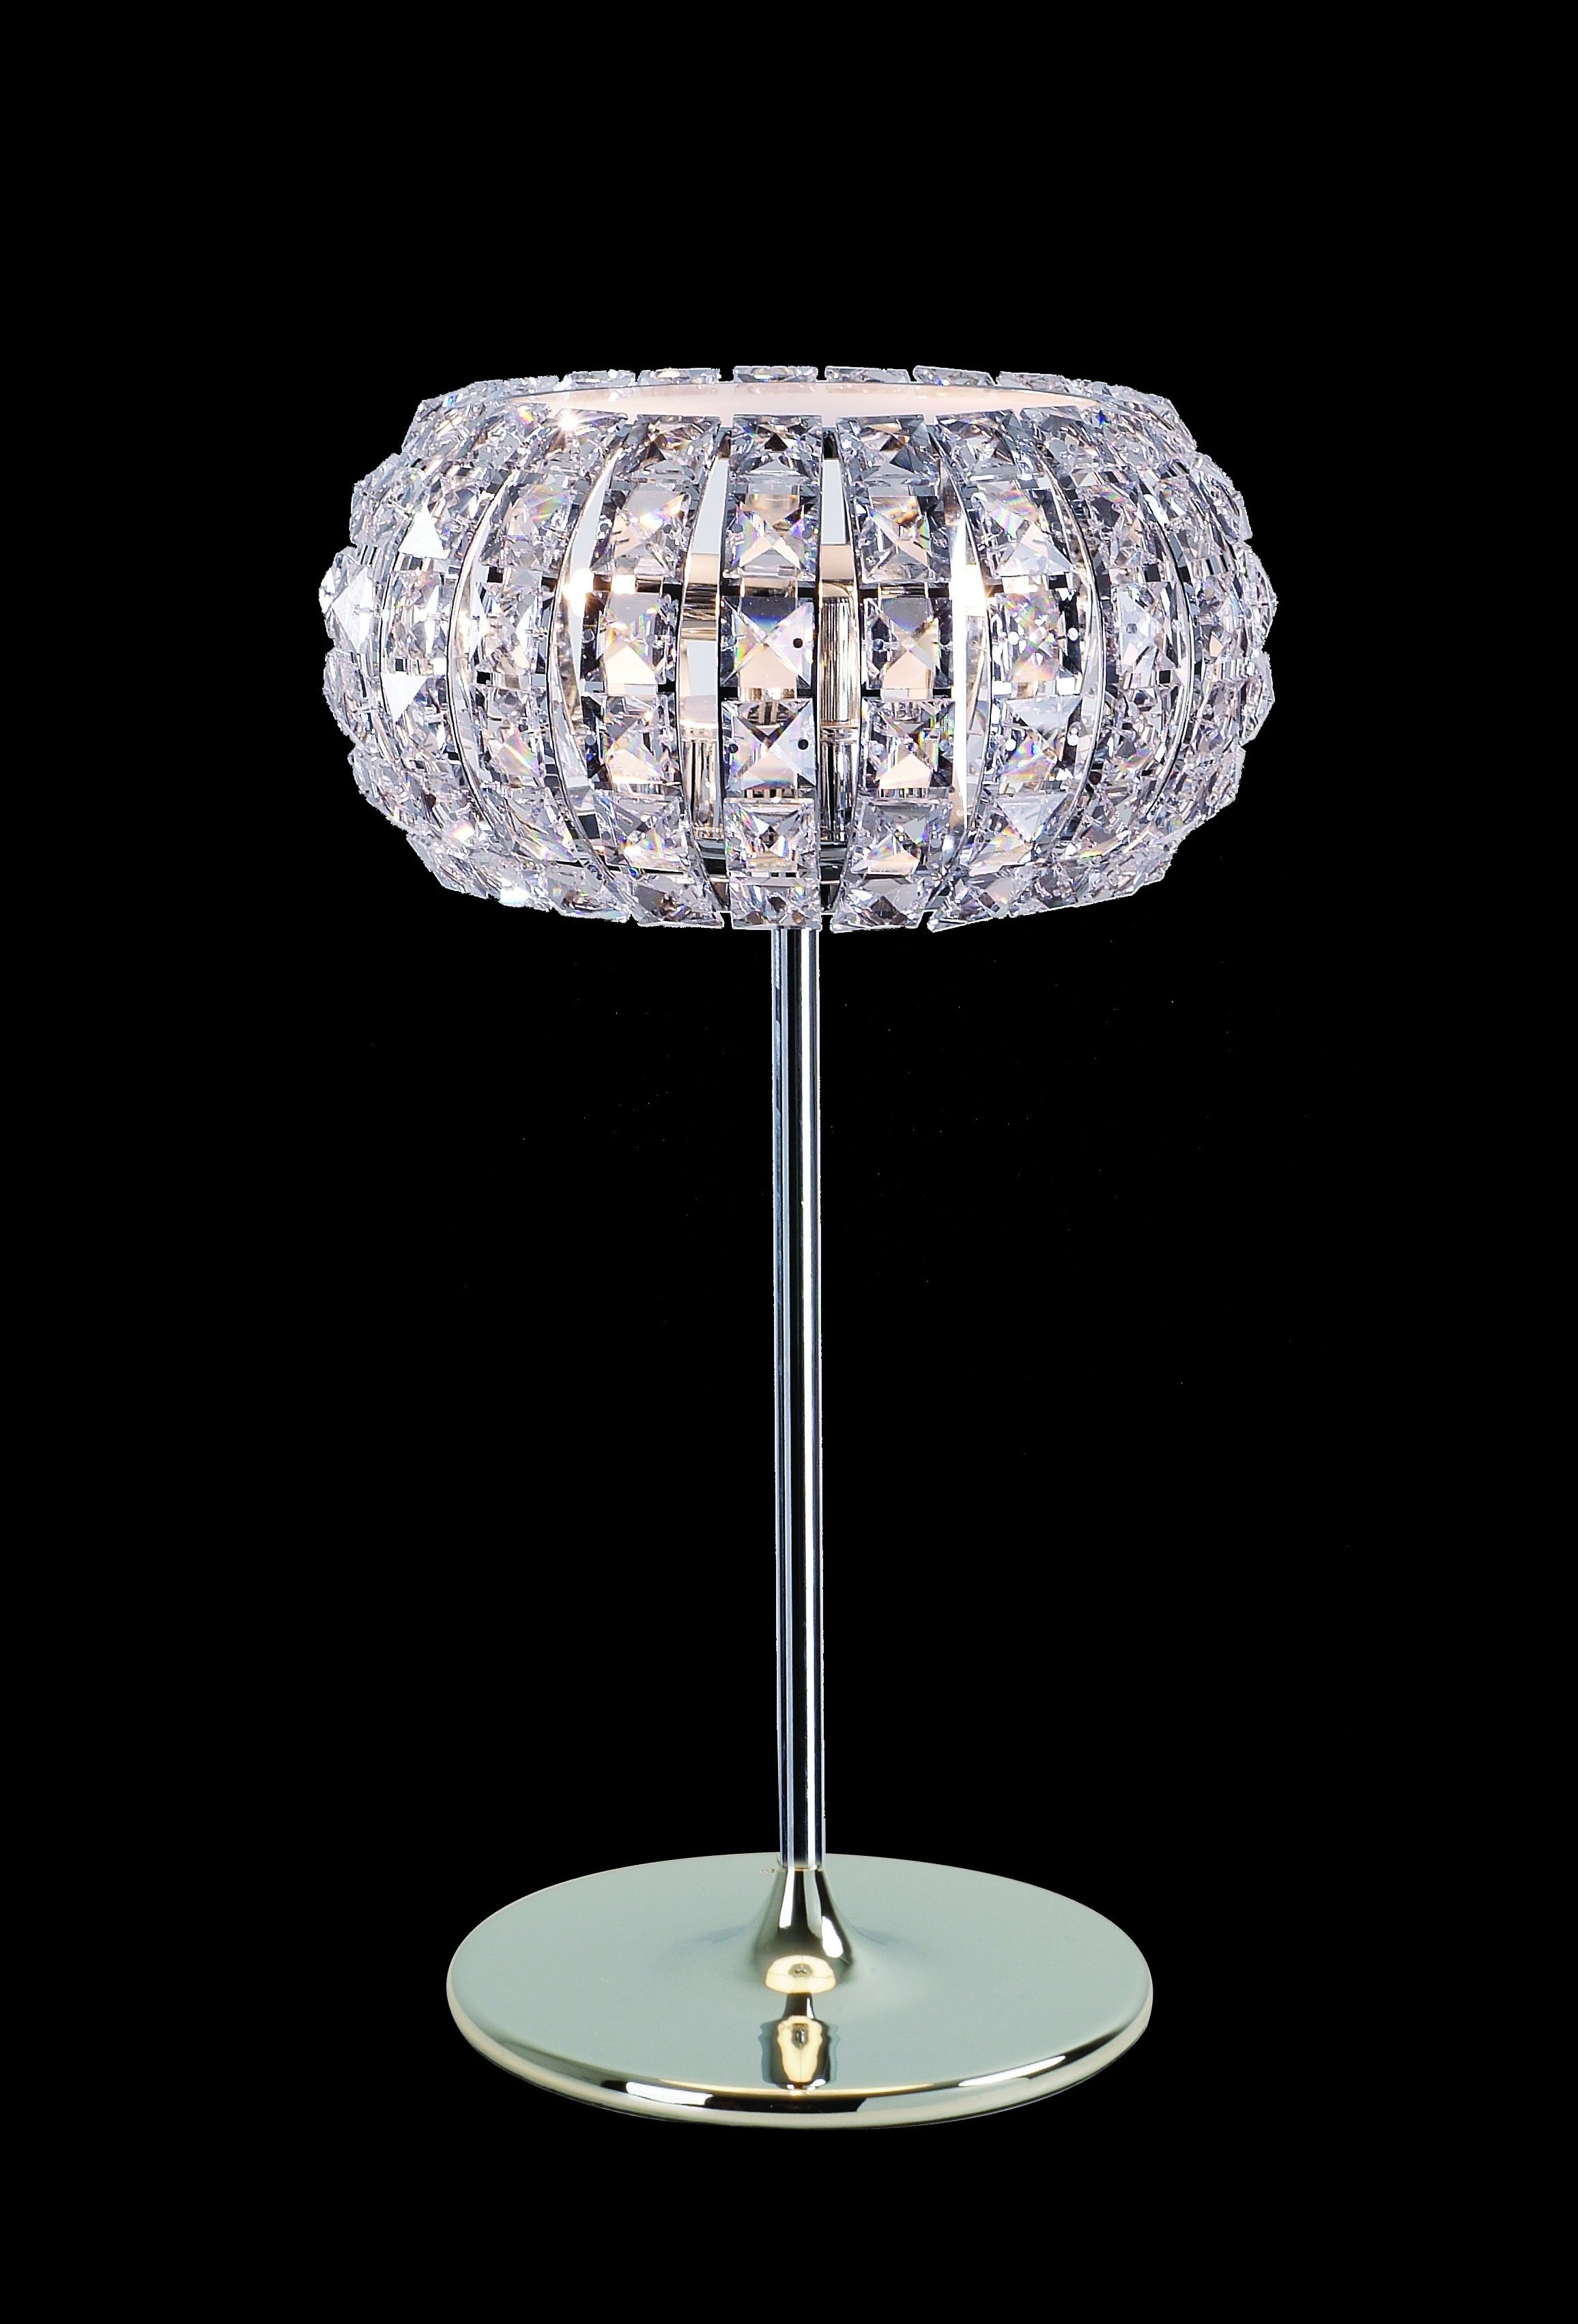 Impex CFH905262/TL/CH Rome 3 Light Crystal Table Lamp in Chrome